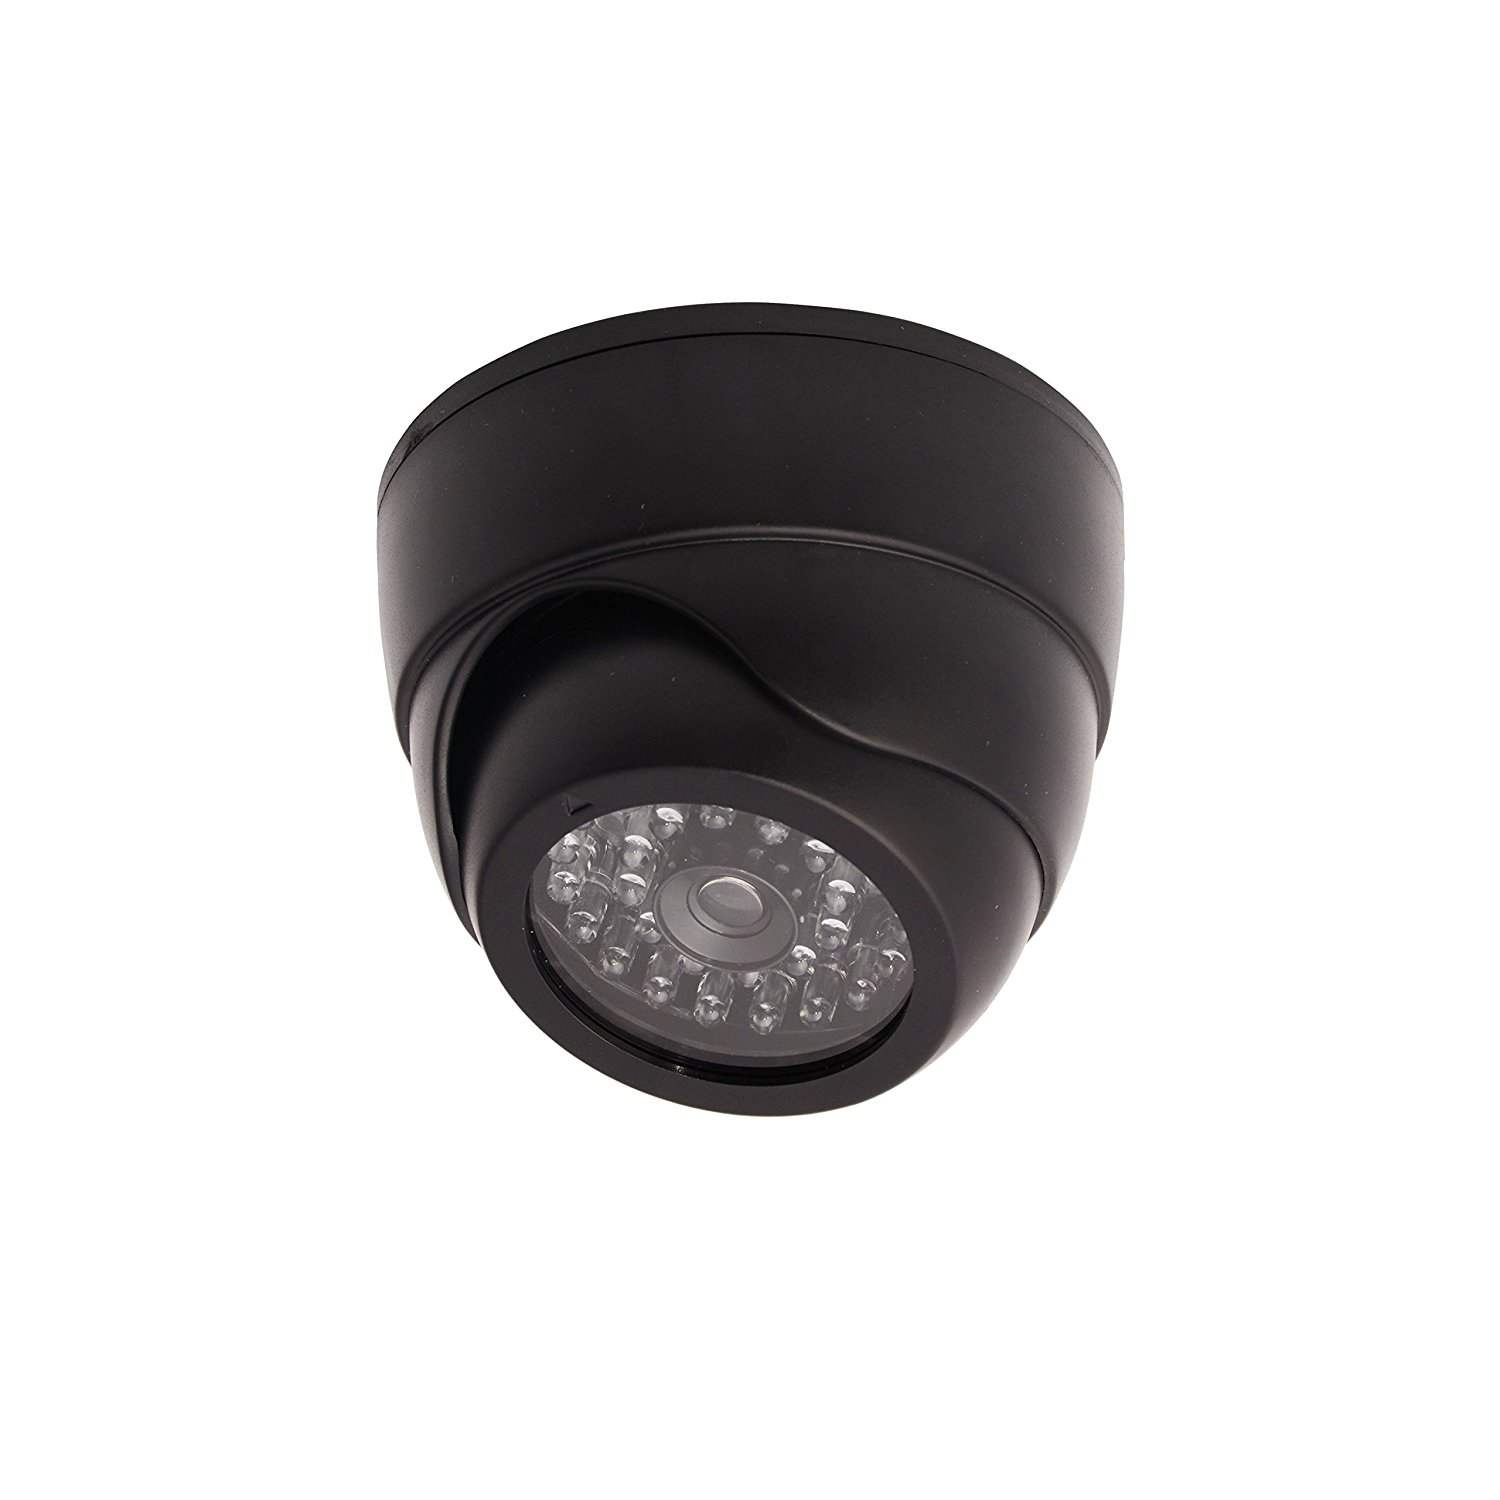 Dummy Replica Criminal Surveillance Imitation Dome Camera With LED, Black